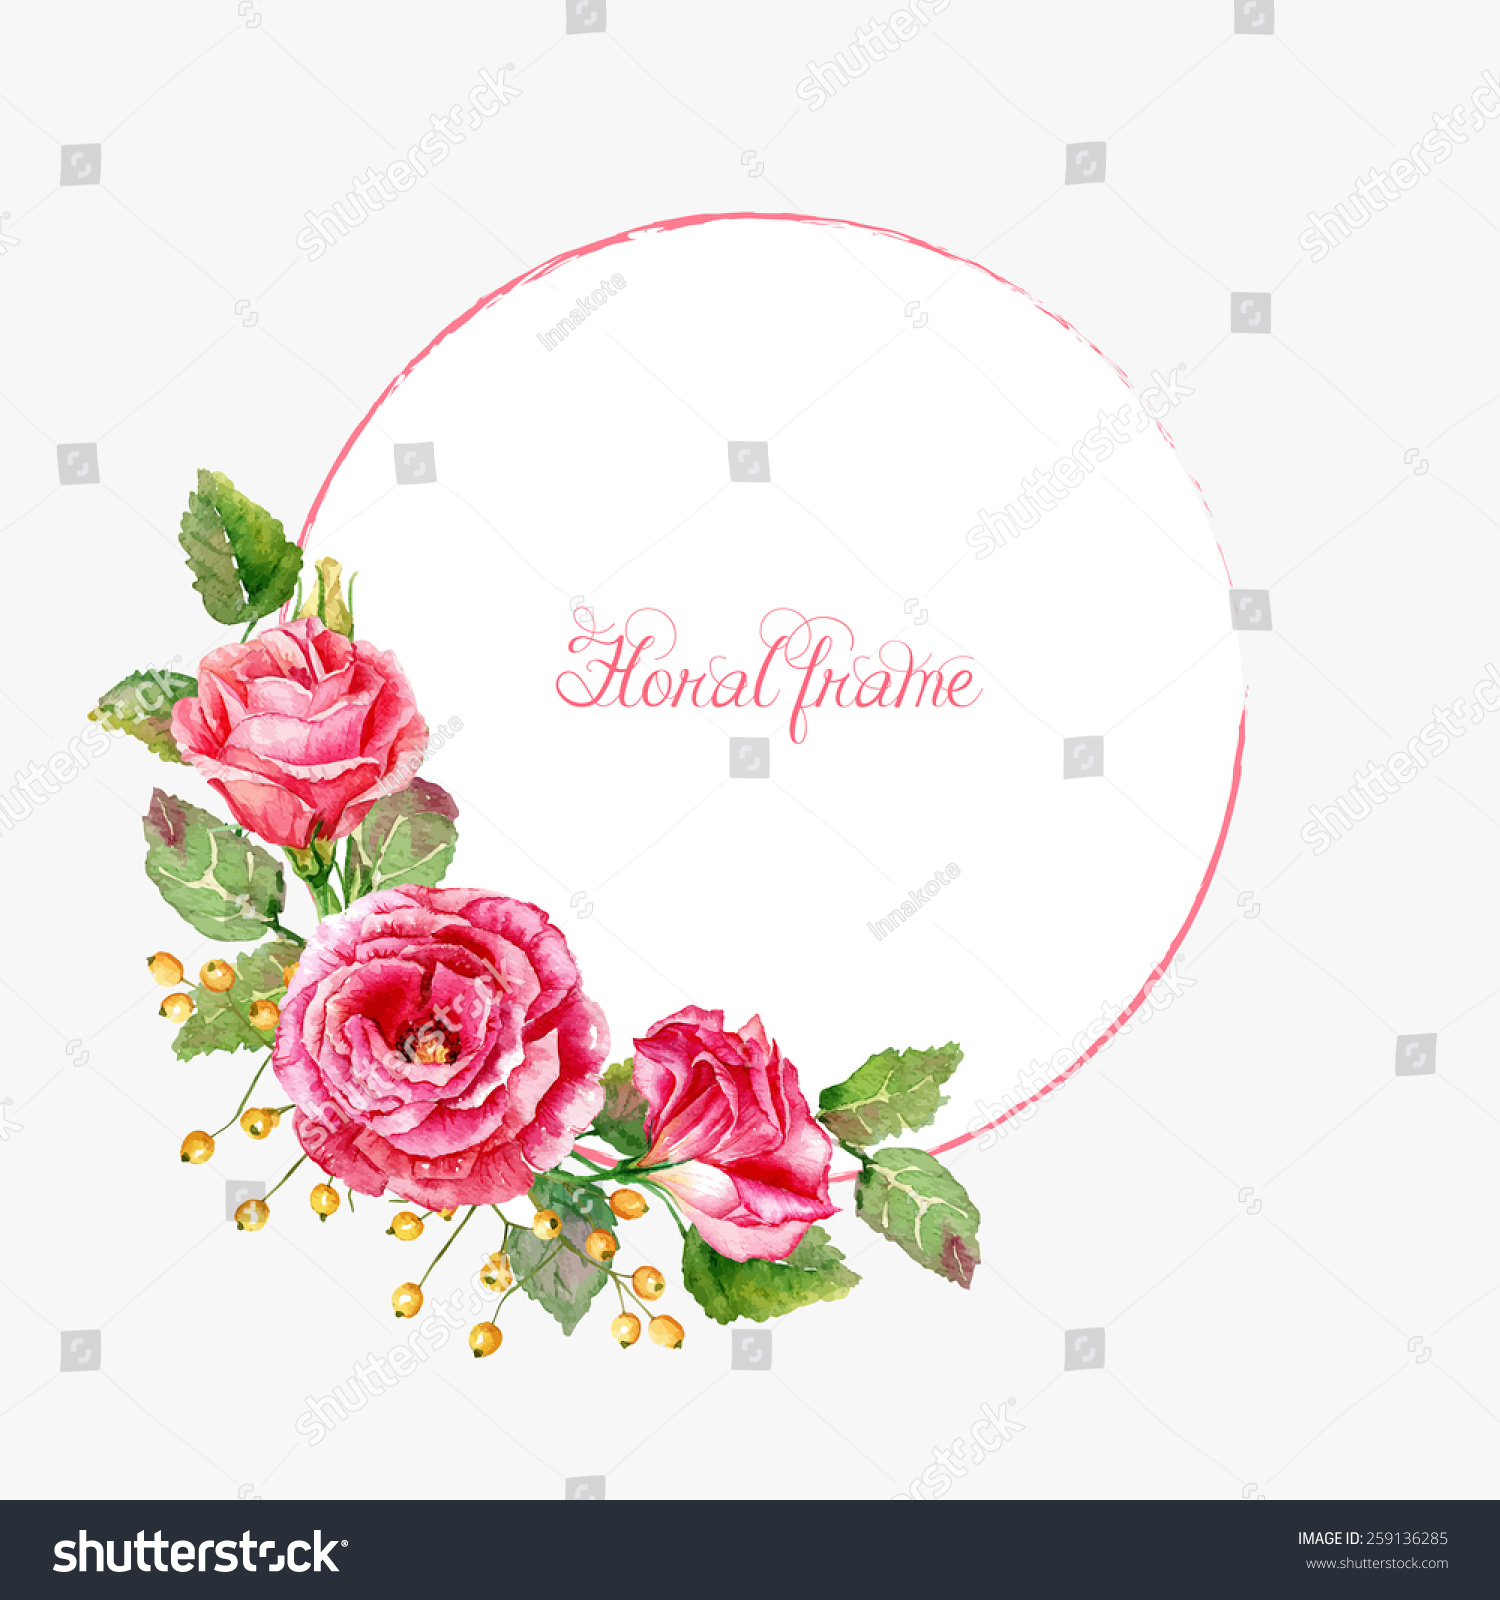 Vector floral frames collection #3 - 25 ai цветочные рамки vector 25 ai files+jpg preview архив: rar размер: 4866 mb